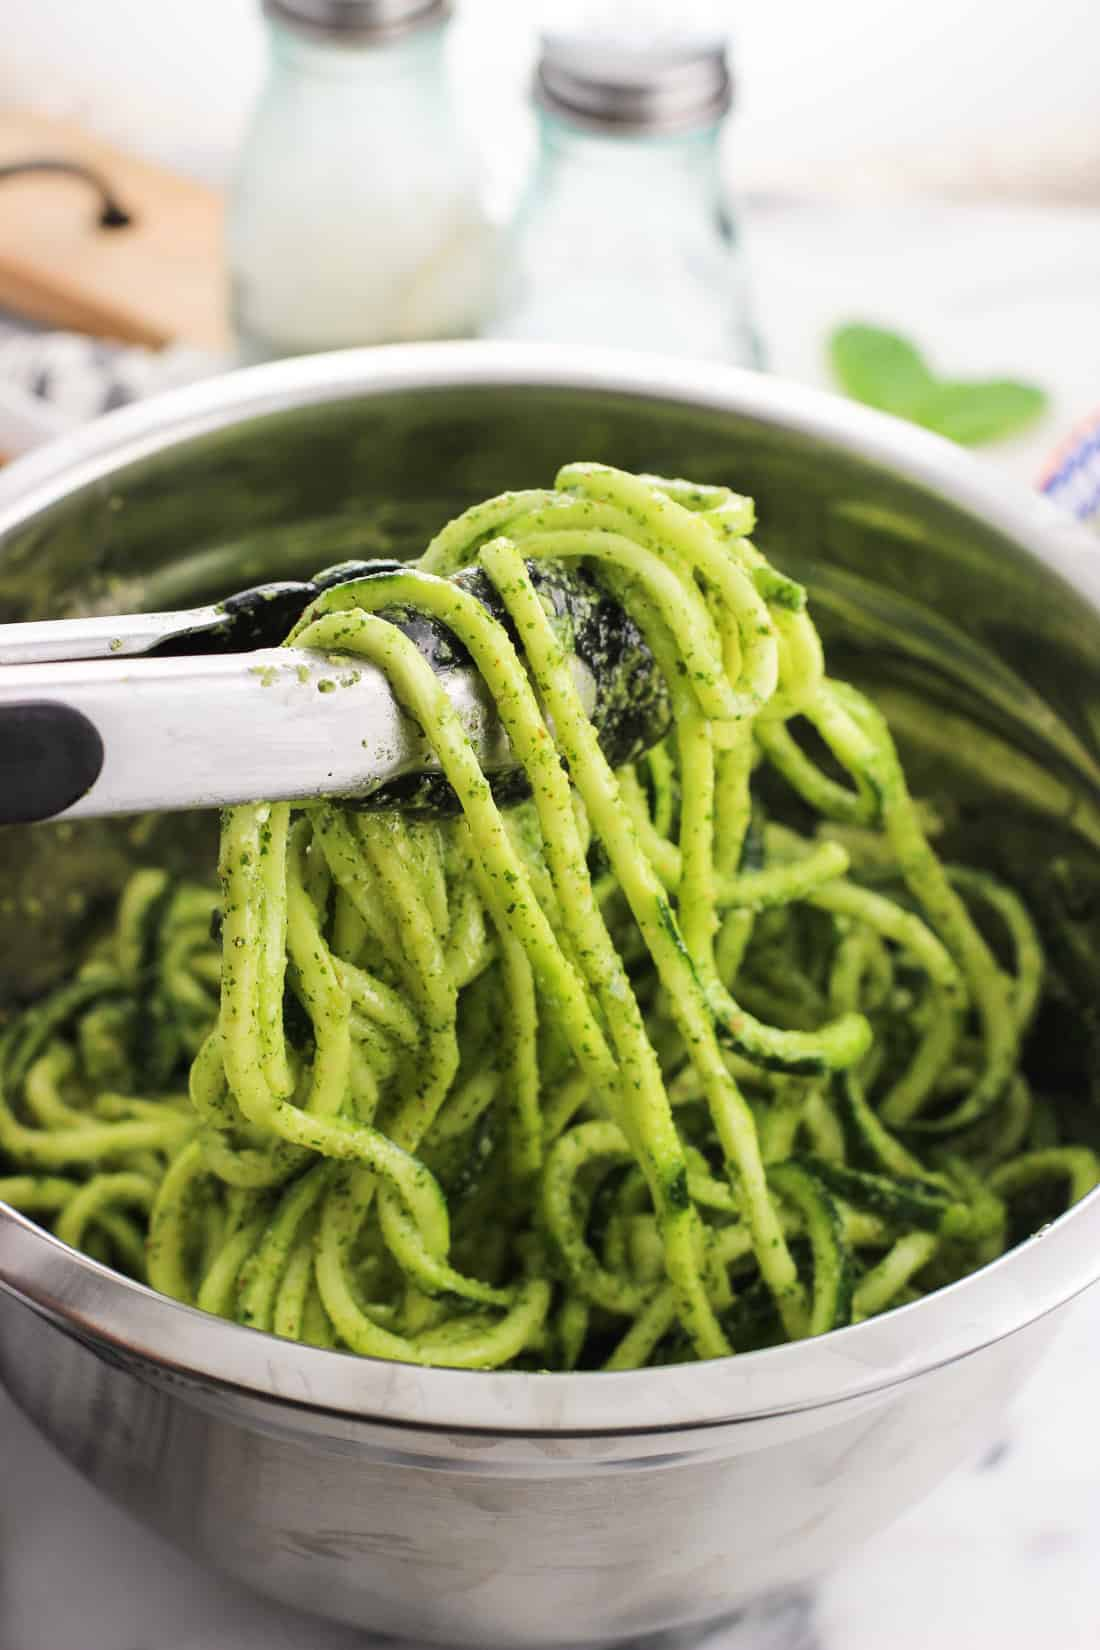 Tongs lifting up a section of zoodles dressed in pesto sauce from a medium metal bowl